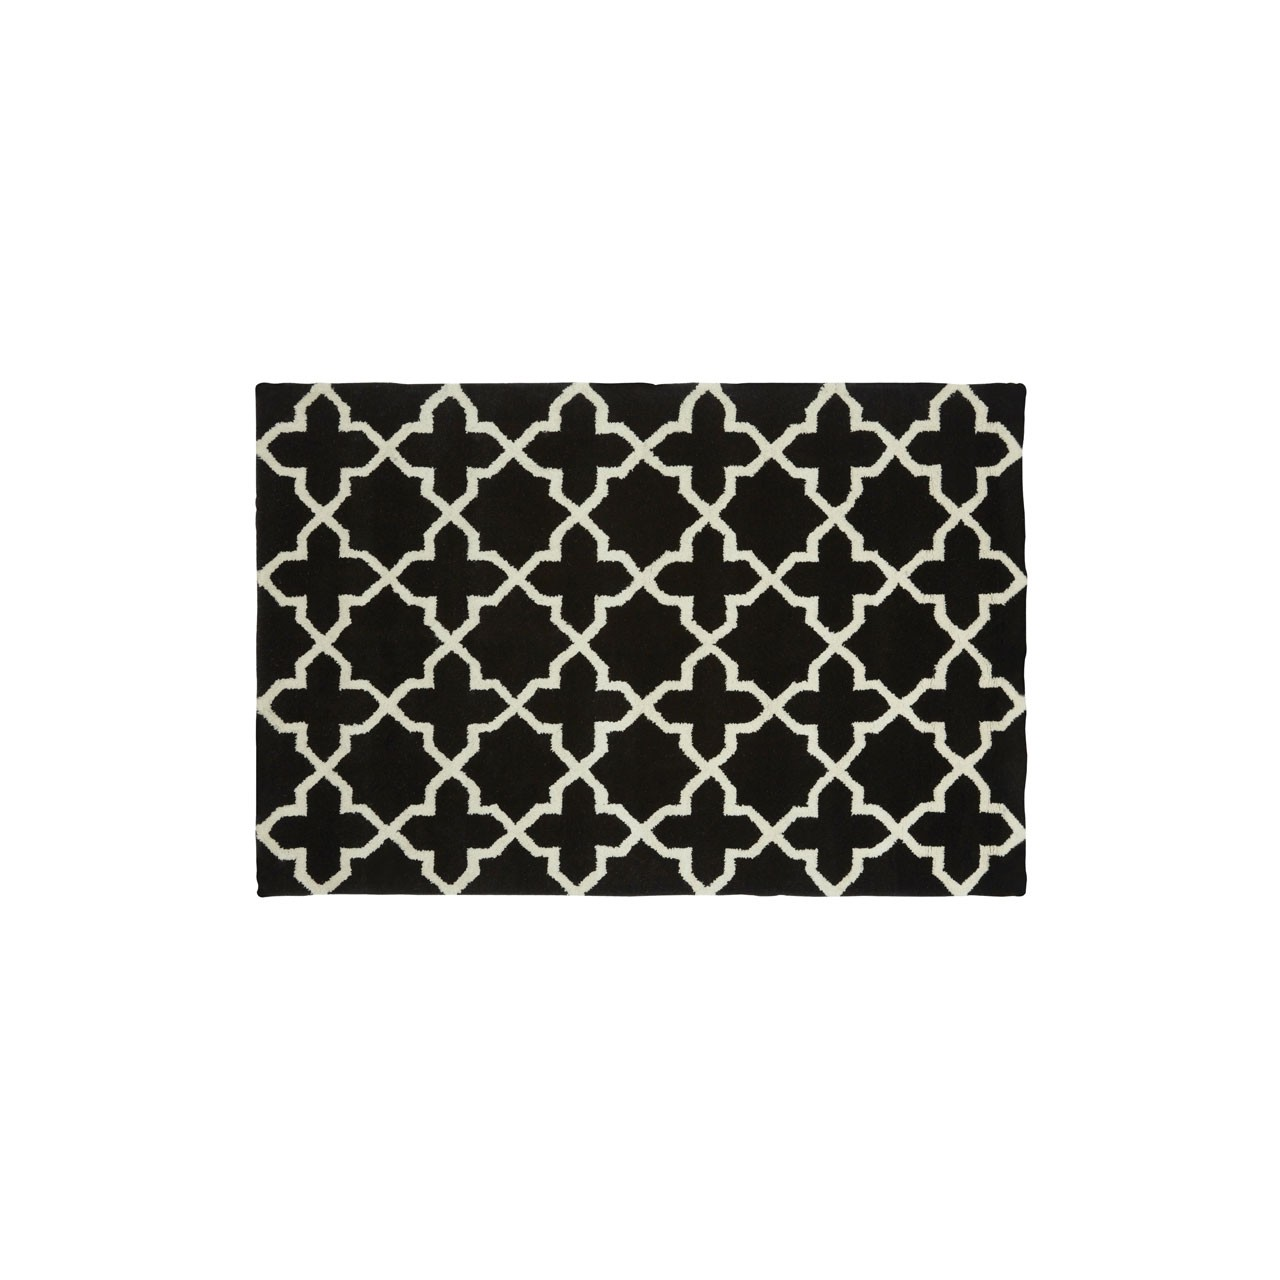 Prime Furnishing Kensington Rug - Black/White